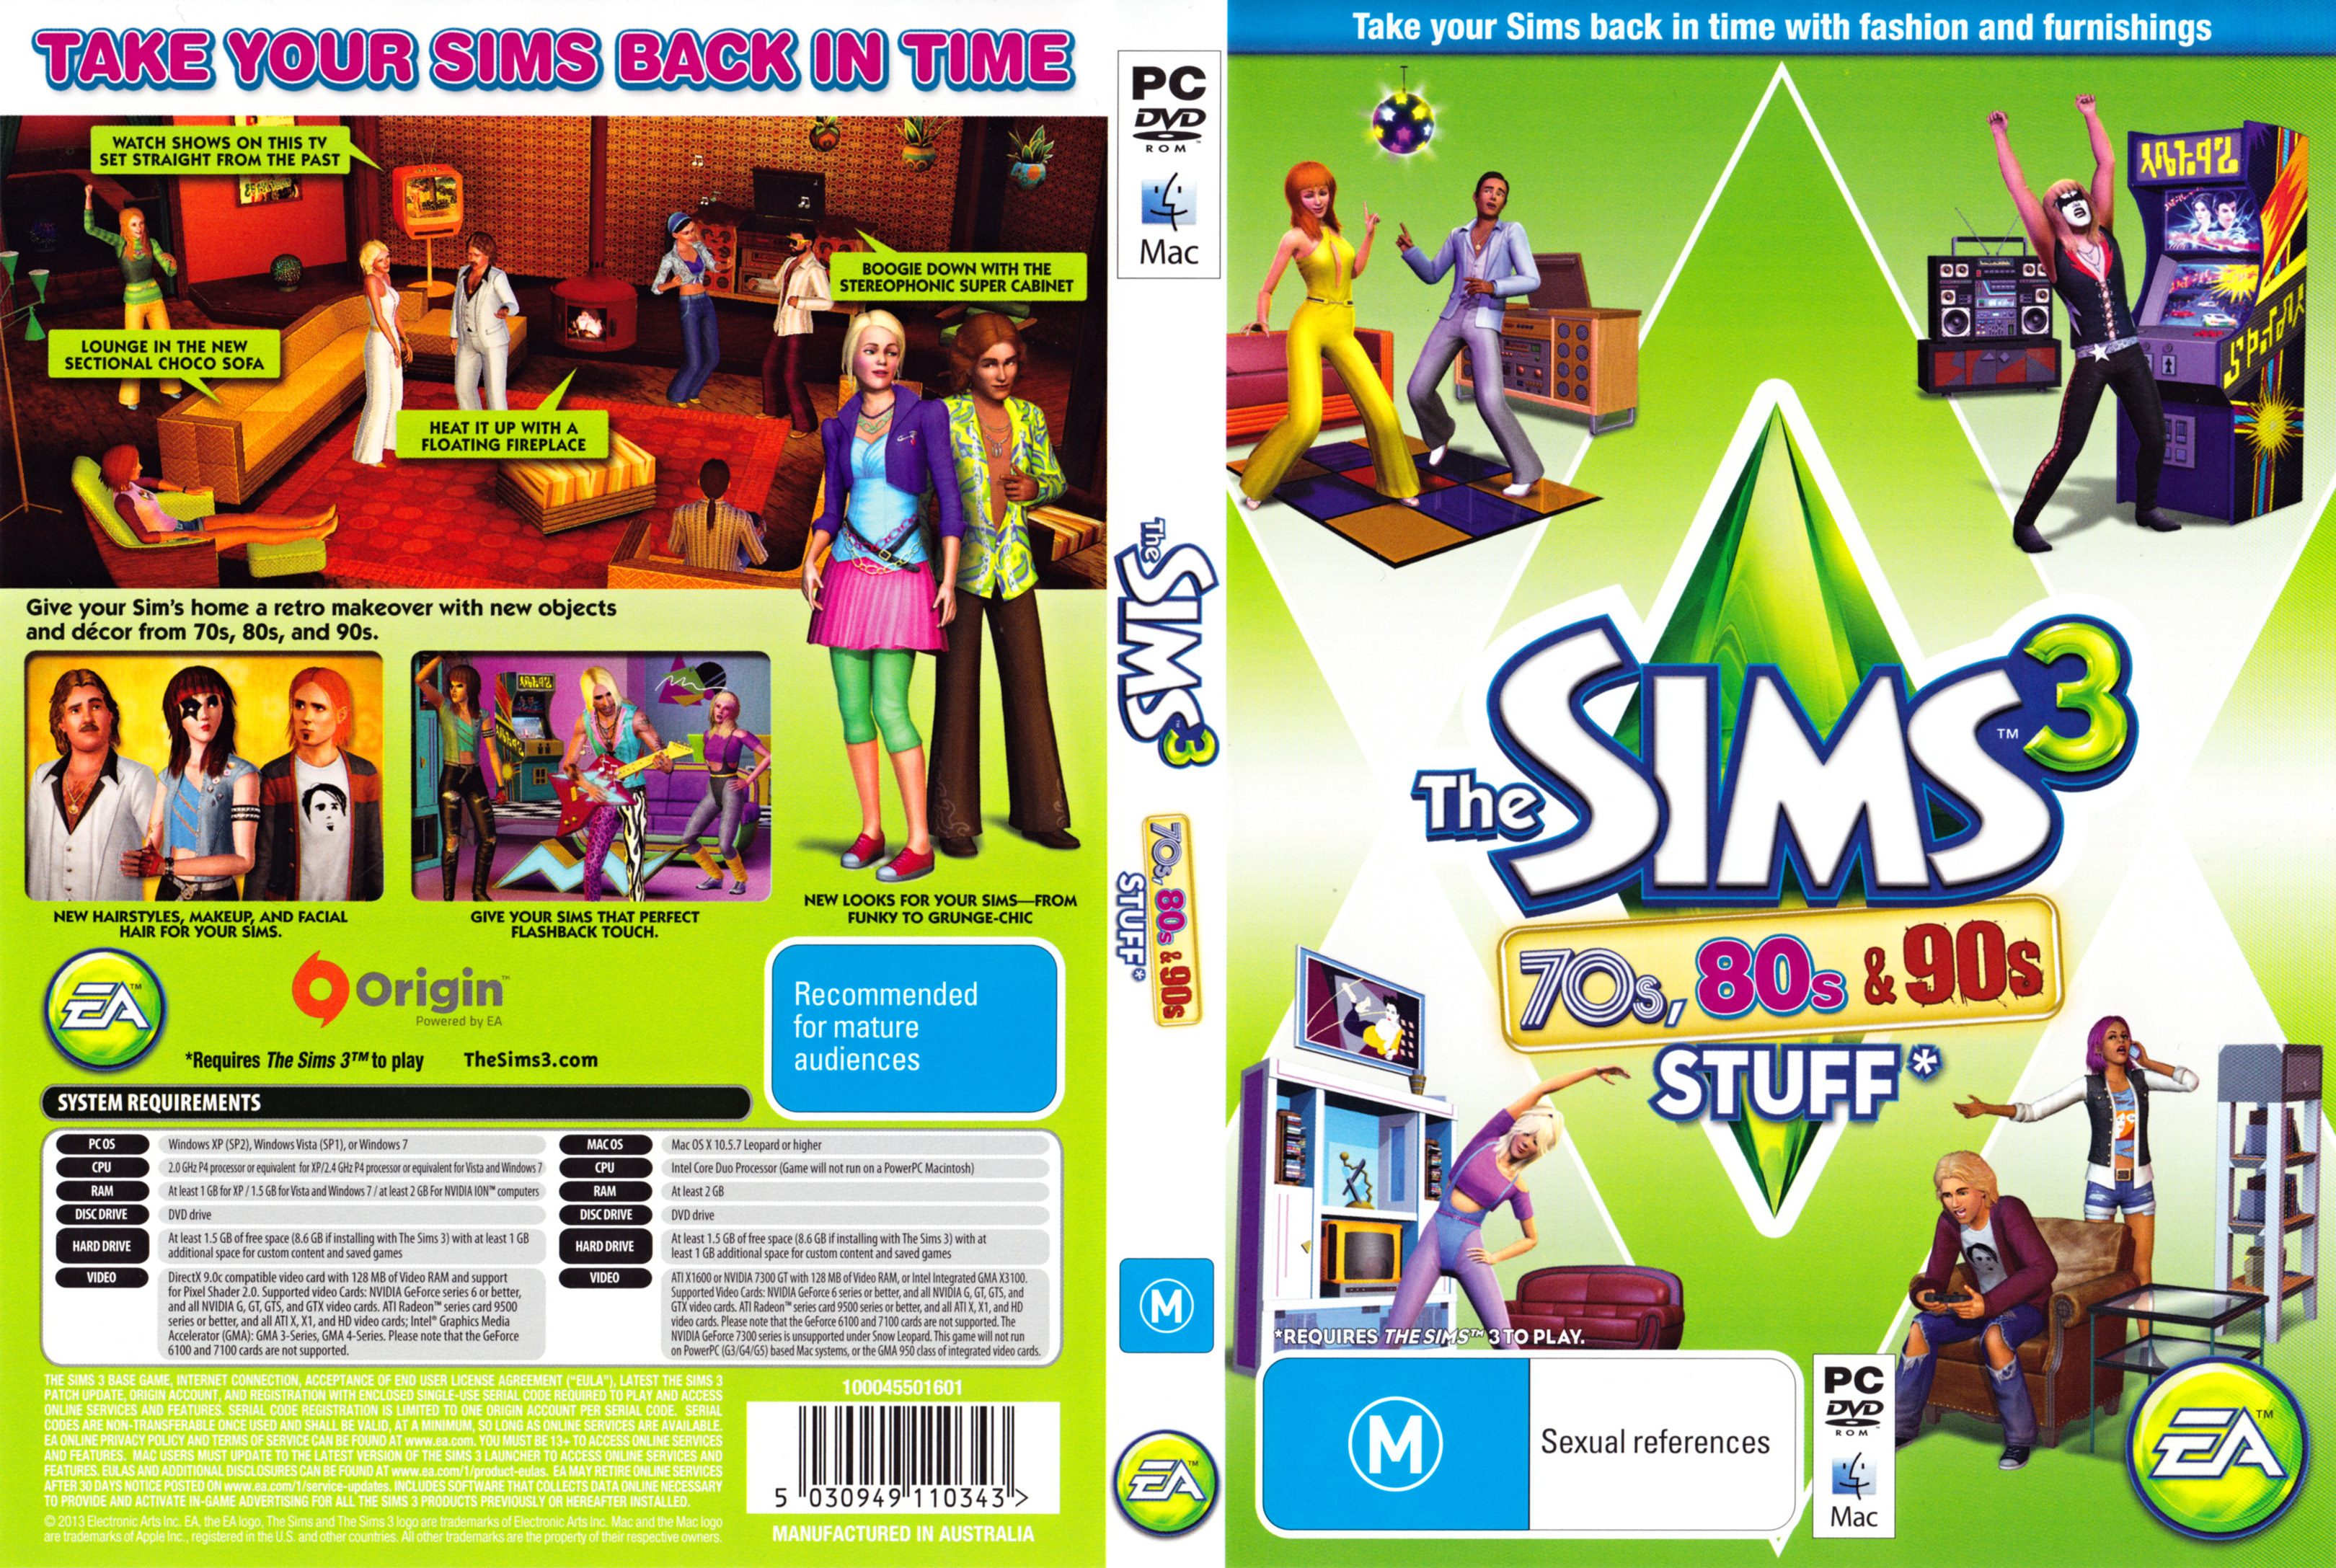 the last patch for the sims 3 the best free software for your perksdevelopers